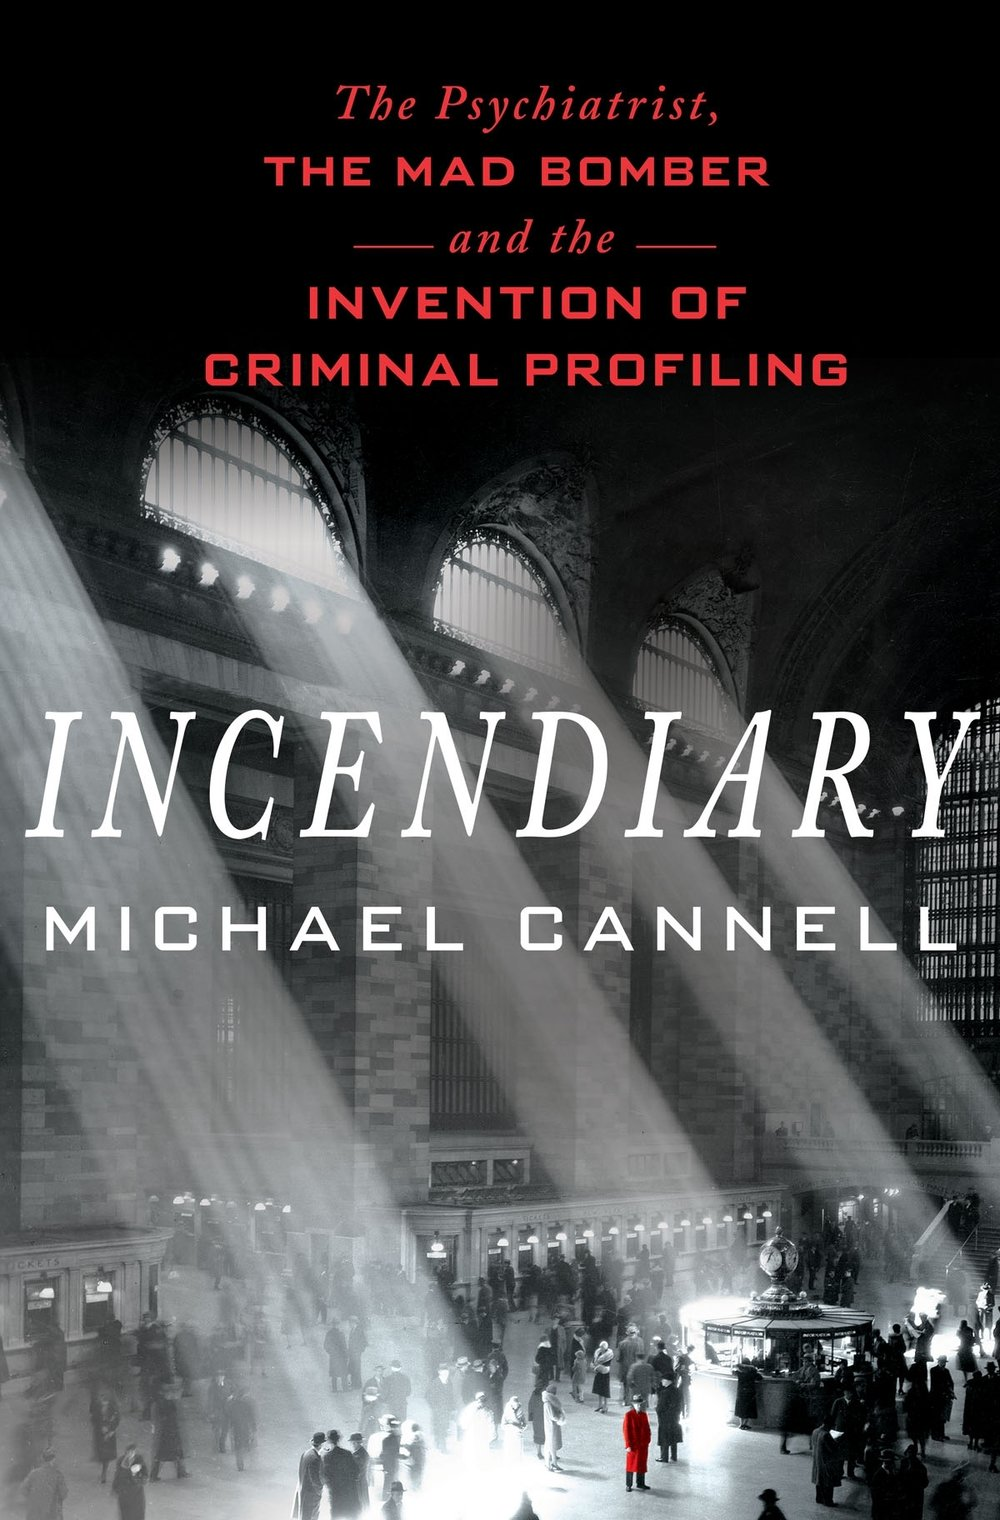 Cannell, Michael INCENDIARY.jpg